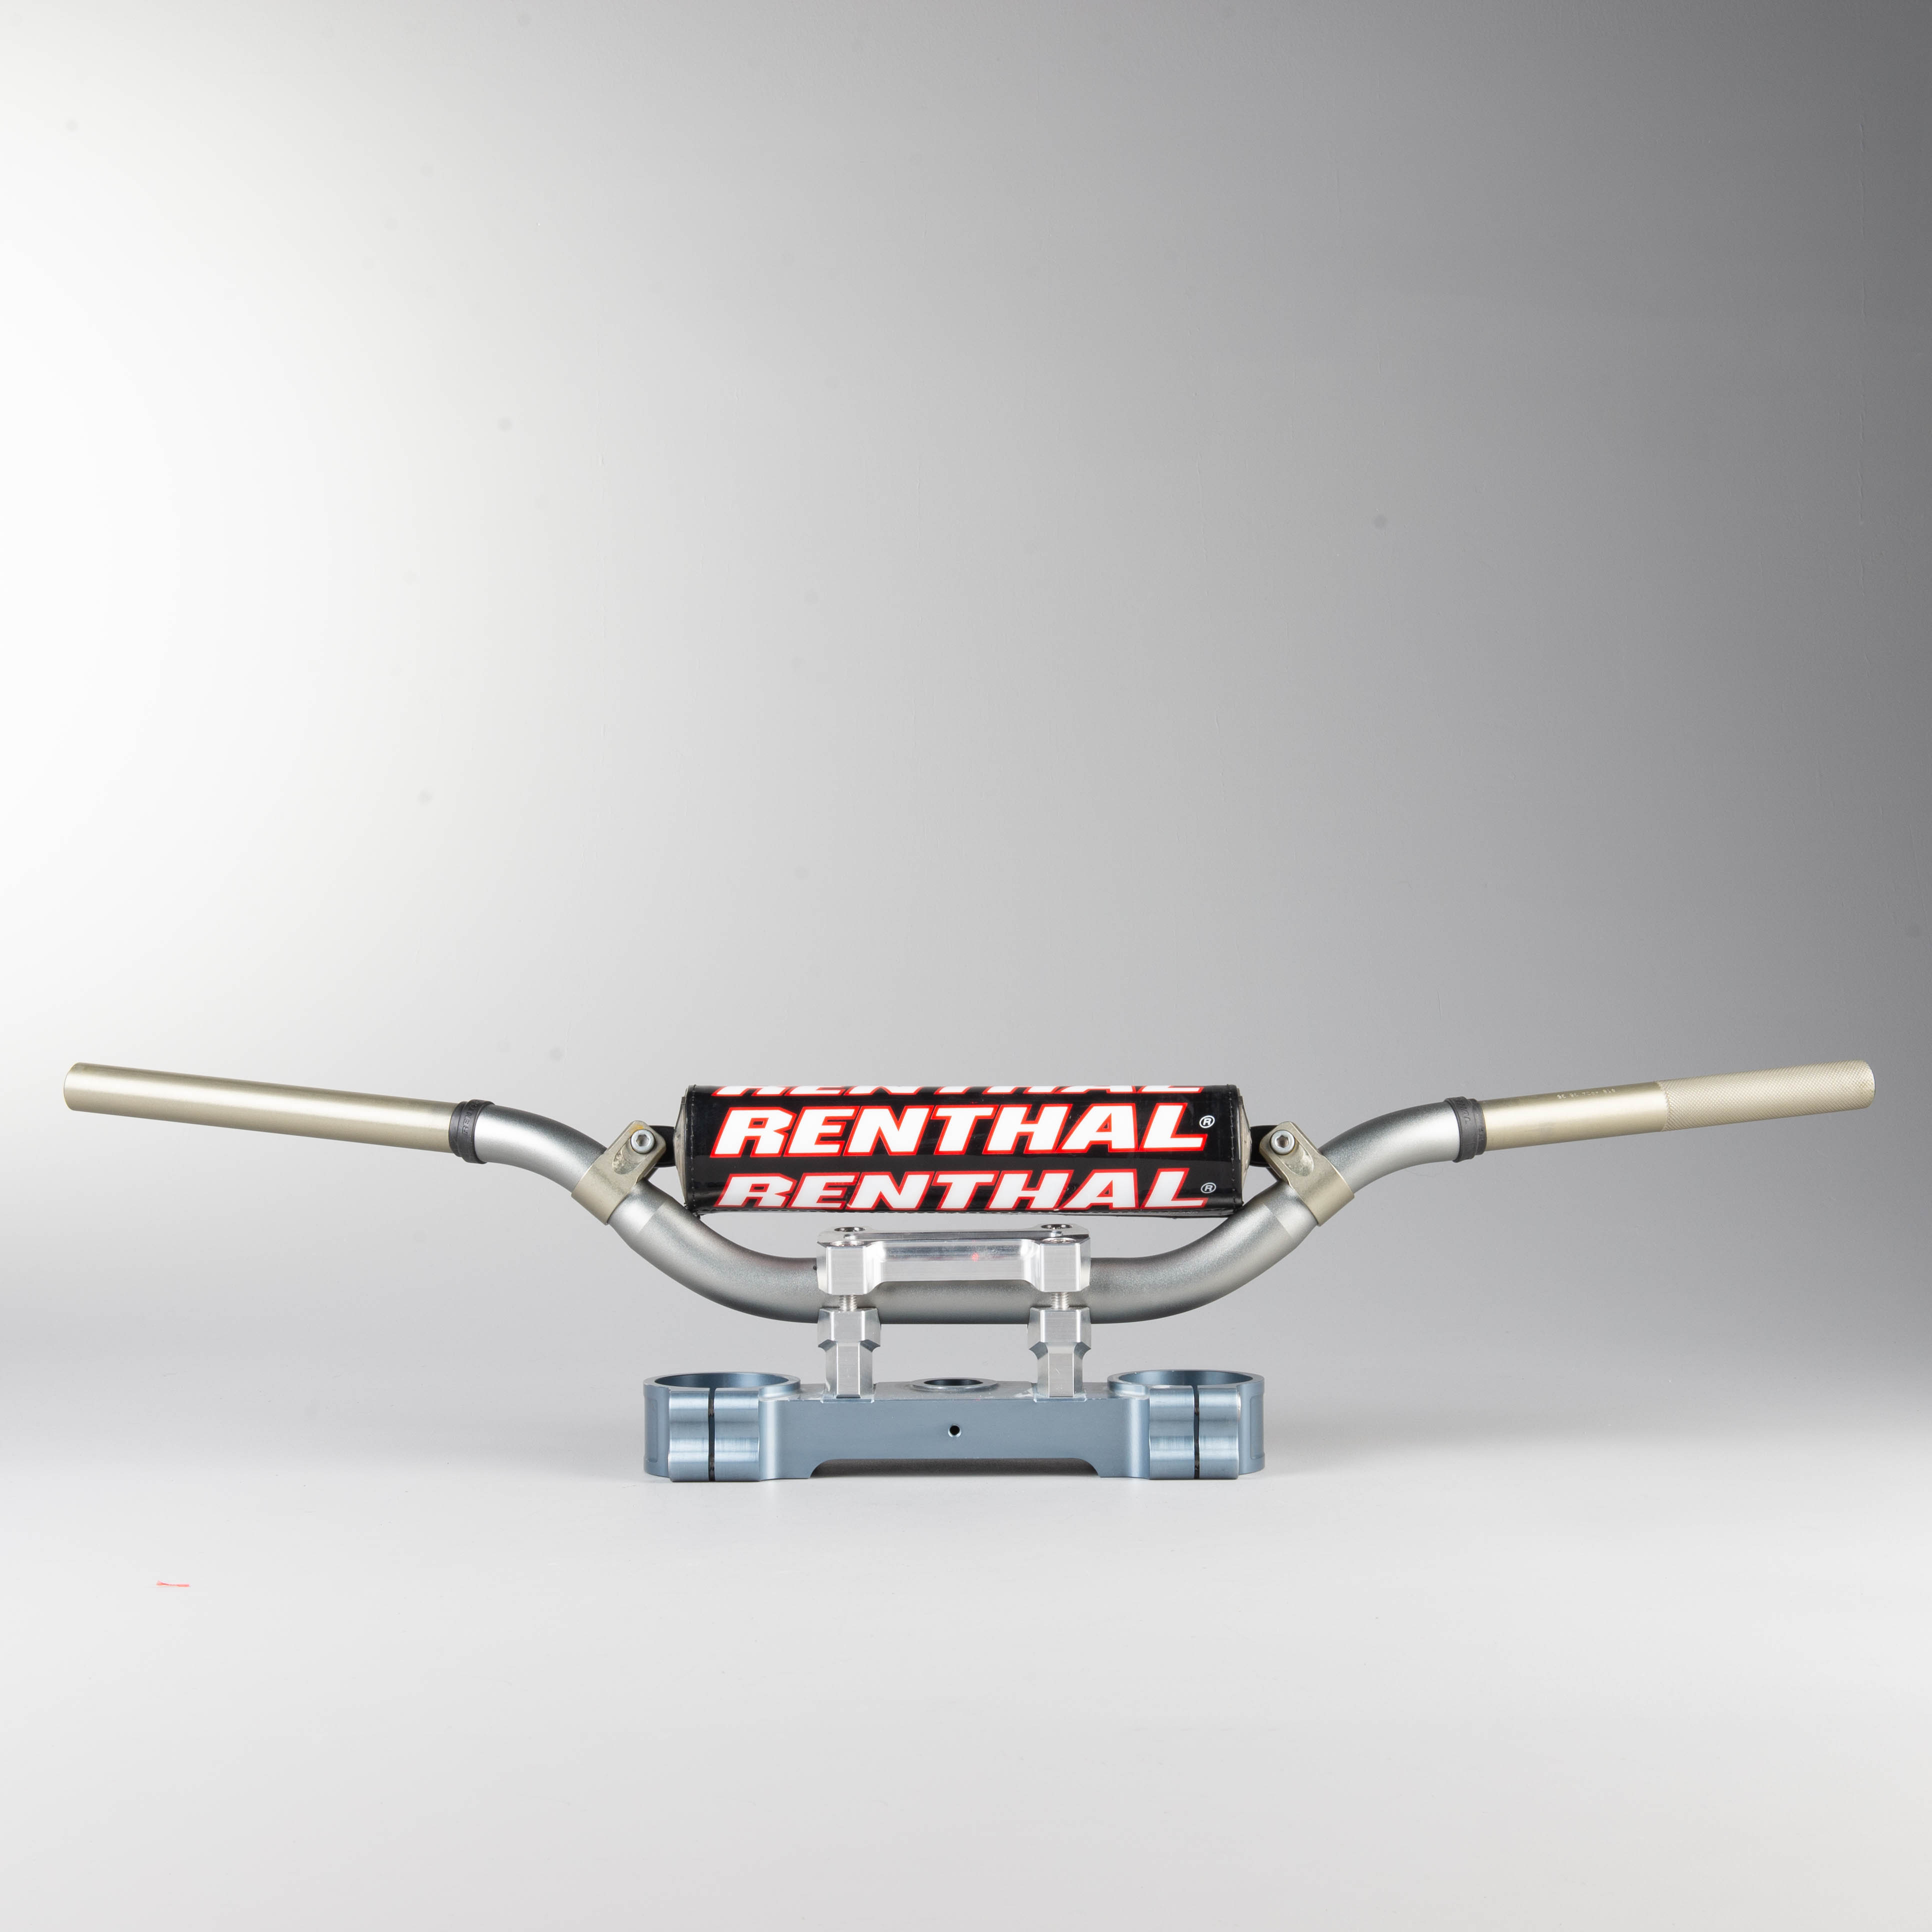 Renthal Twinwall Motorcycle Handlebars All Bends /& Colors